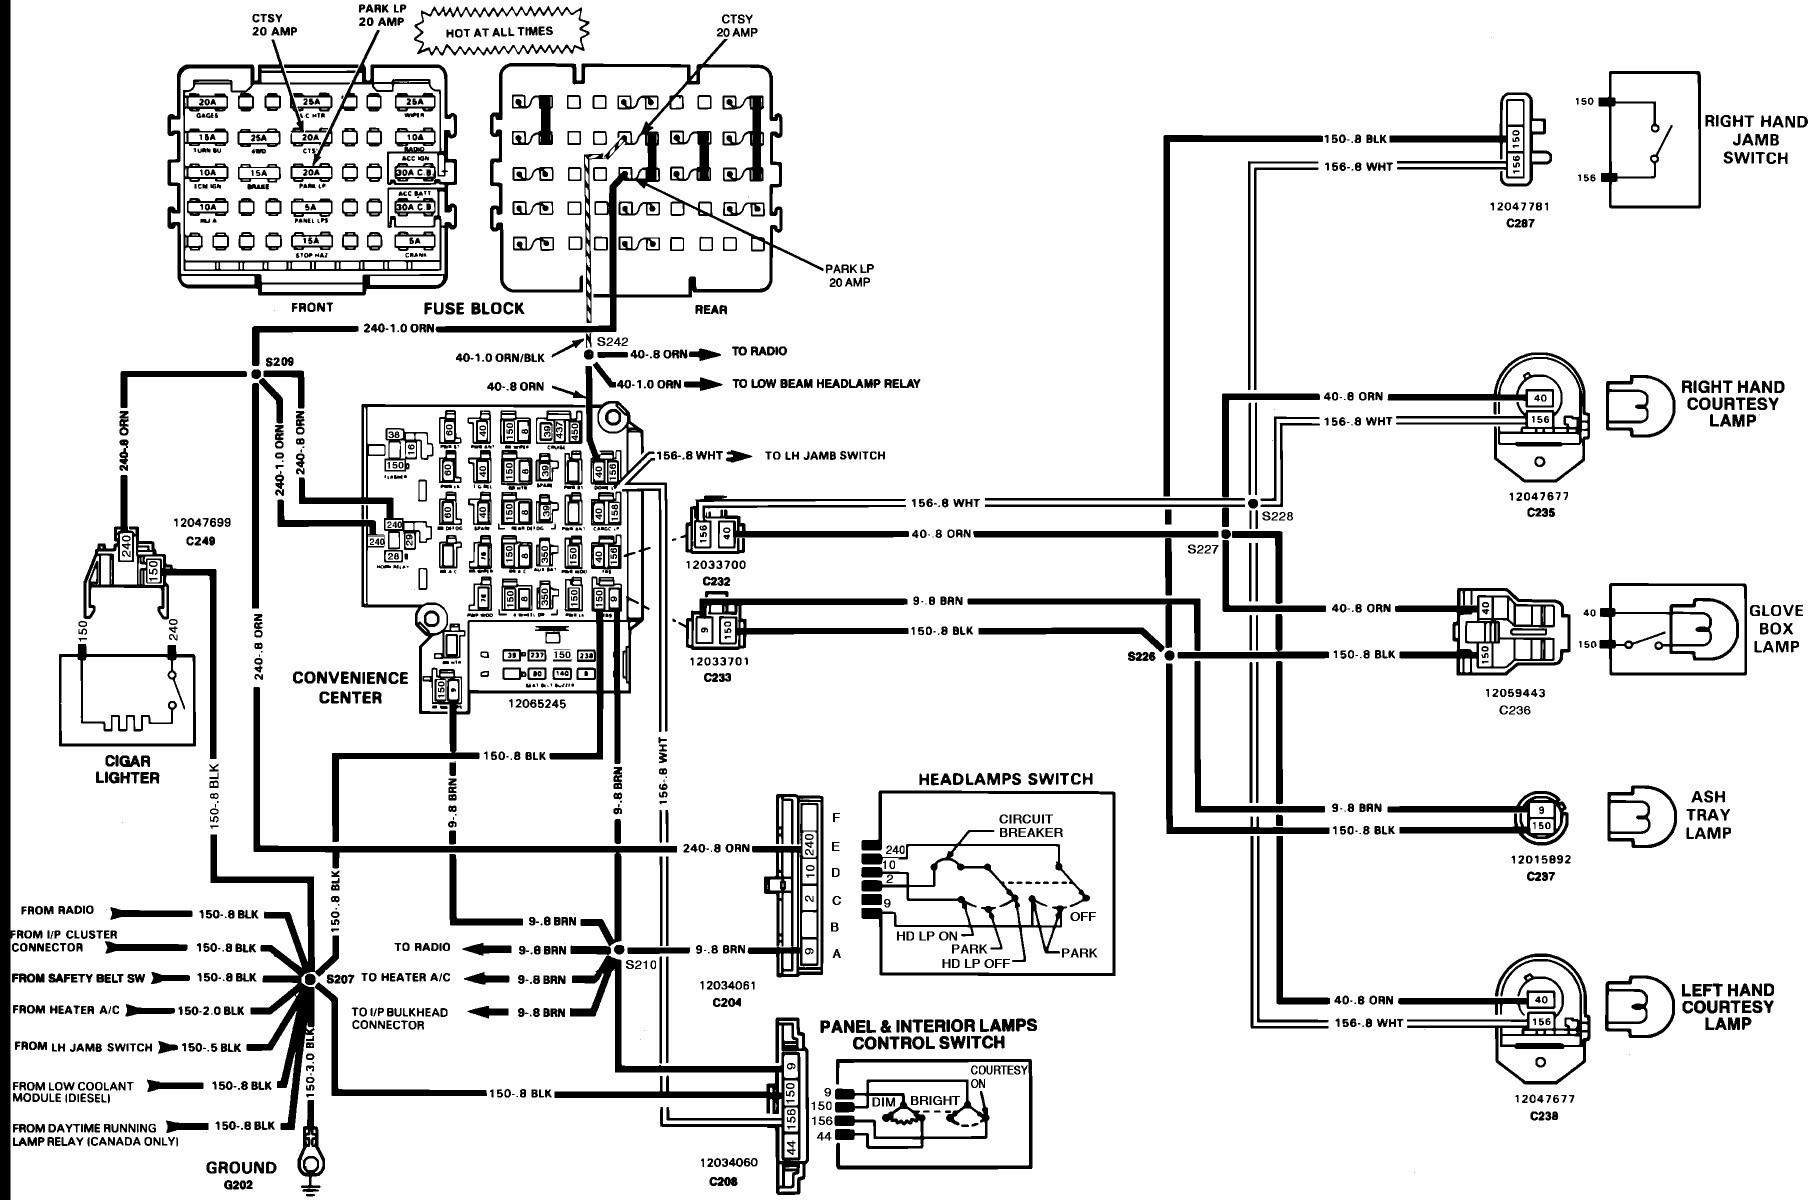 Miraculous Mopar Alternator Wiring Diagram Wiring Library Wiring Digital Resources Anistprontobusorg